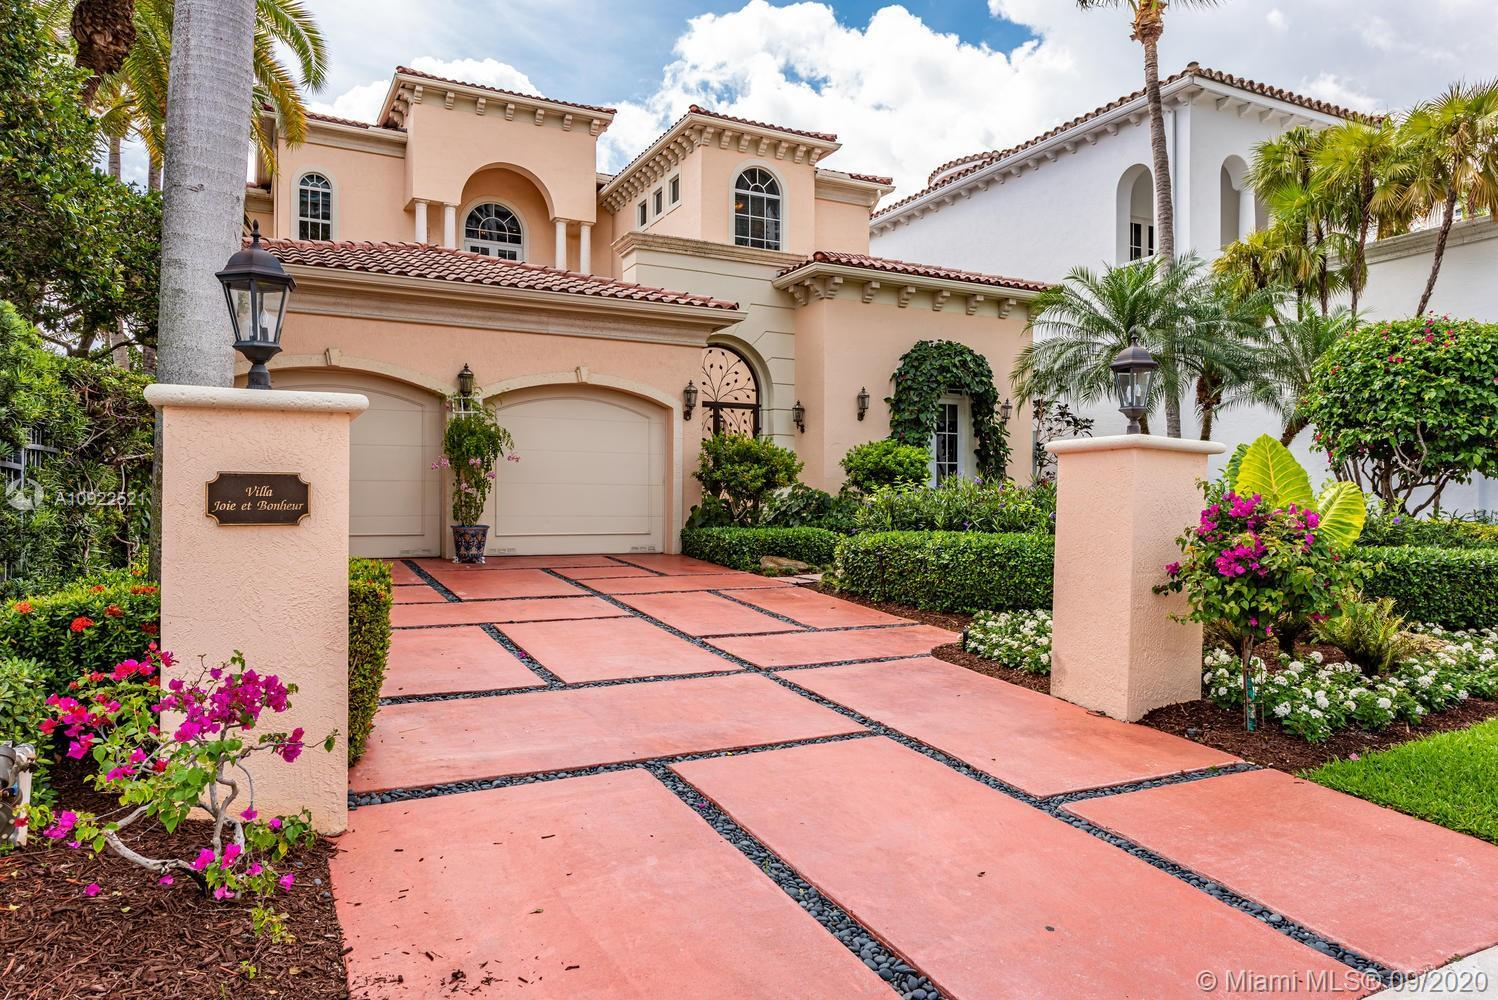 It's all in the details! Island Estates - Private Island Living - Includes a 50' dock, 4 beds, 5 ful